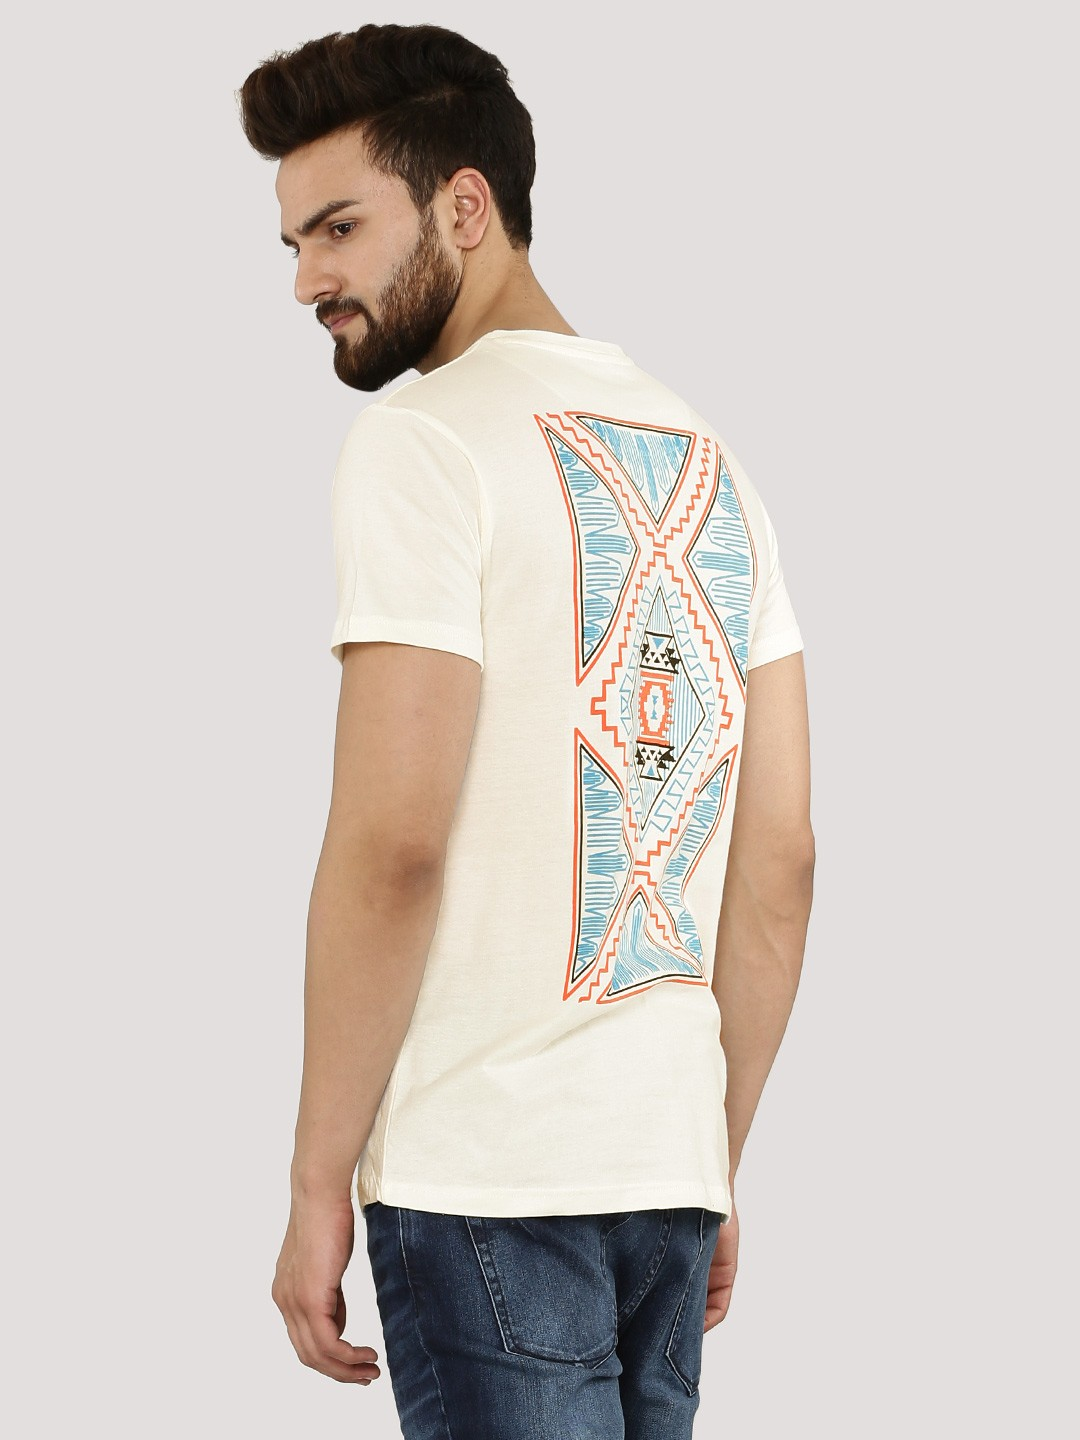 buy styx stones back print t shirt for men men 39 s white